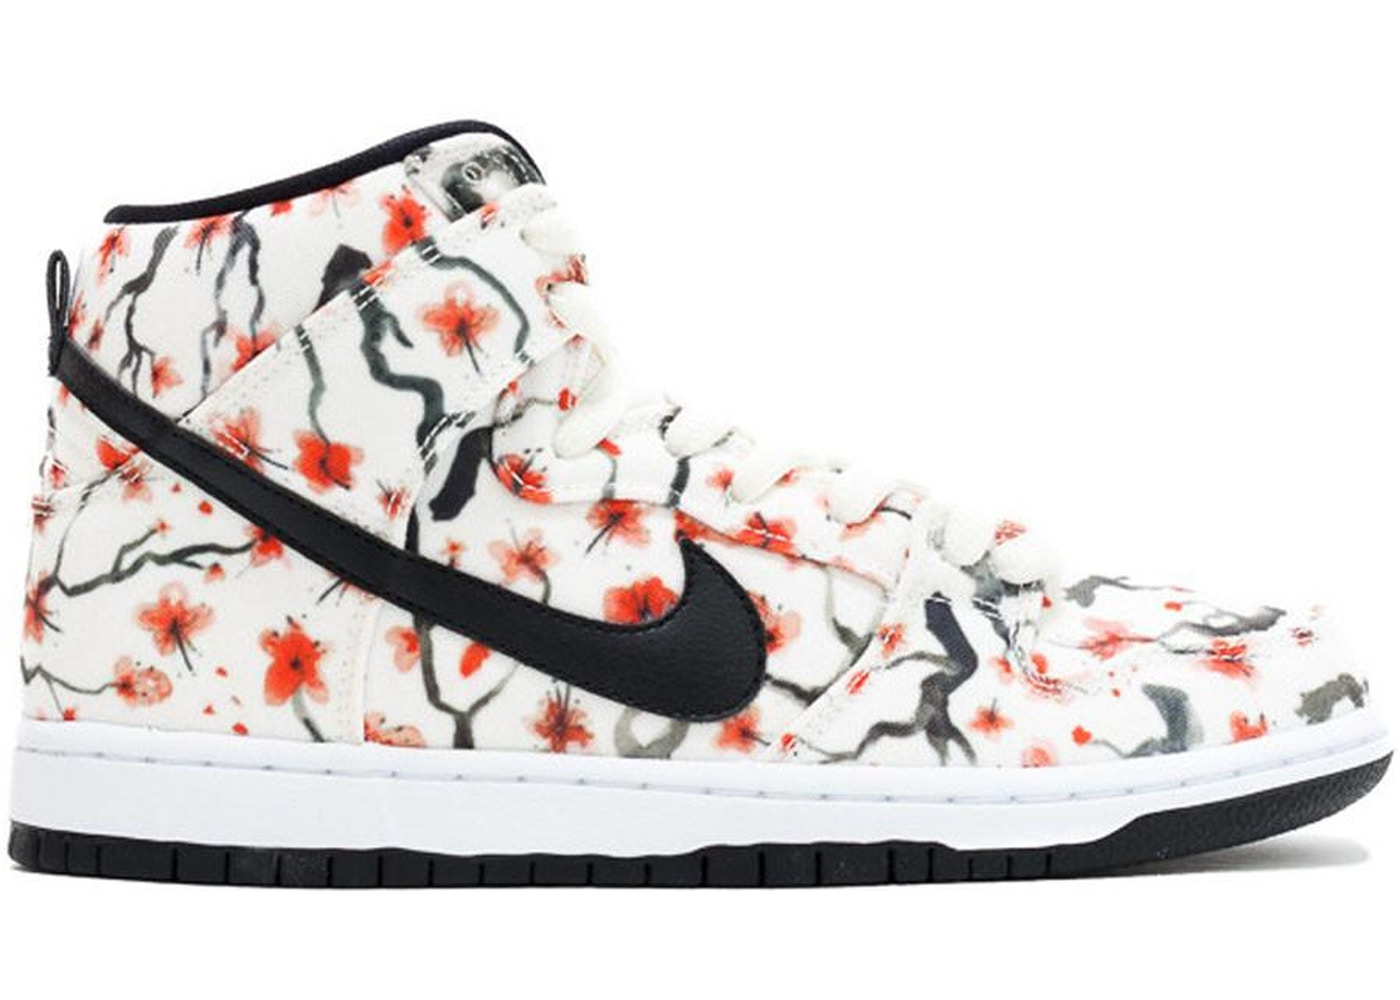 Nike SB Dunk High Cherry Blossom - 305050-106 f16aa69b4